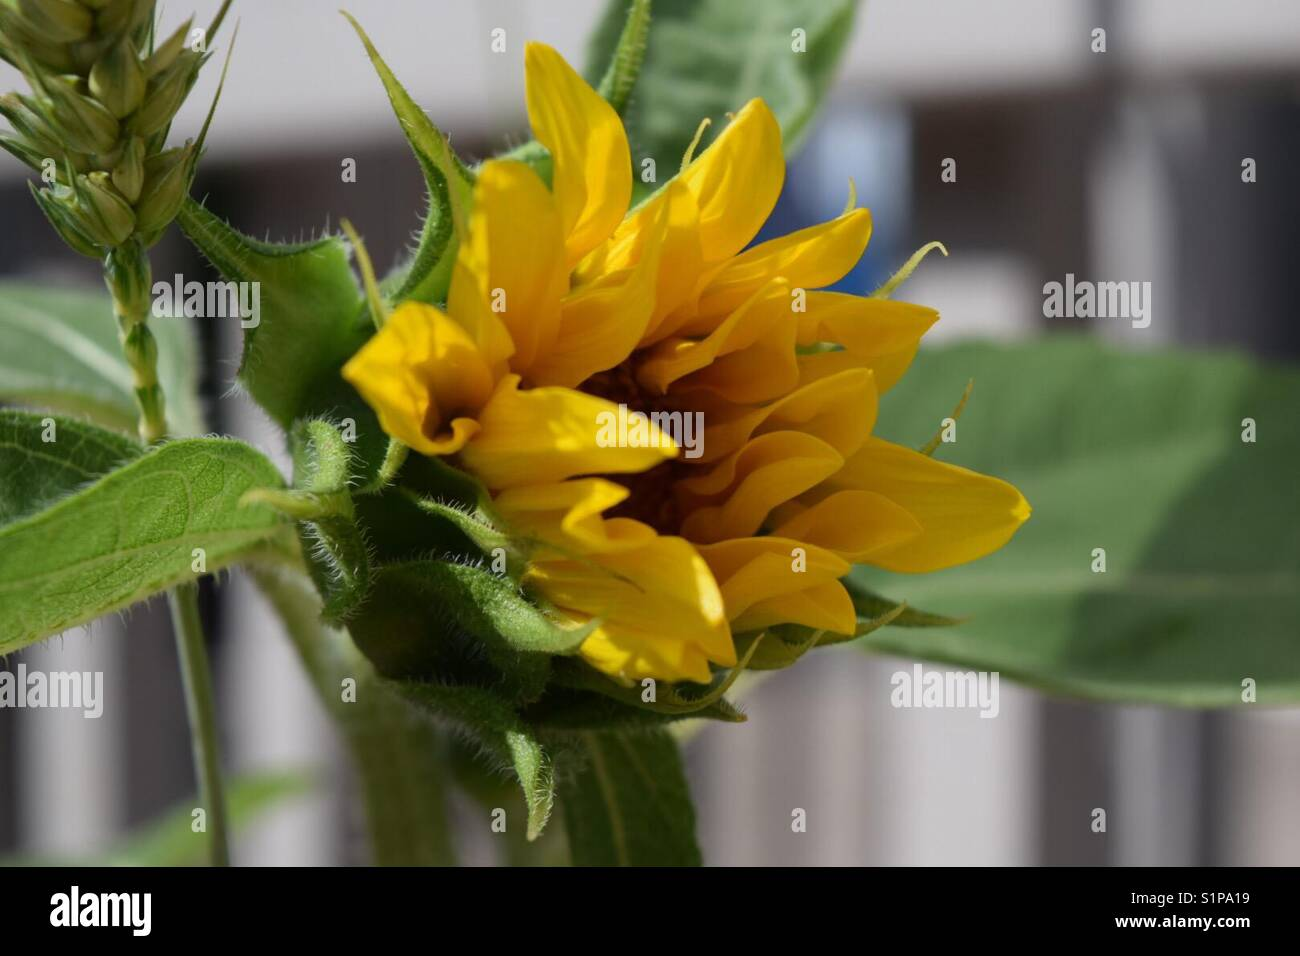 Sunflowers Are Usually Tall Annual Or Perennial Plants That In